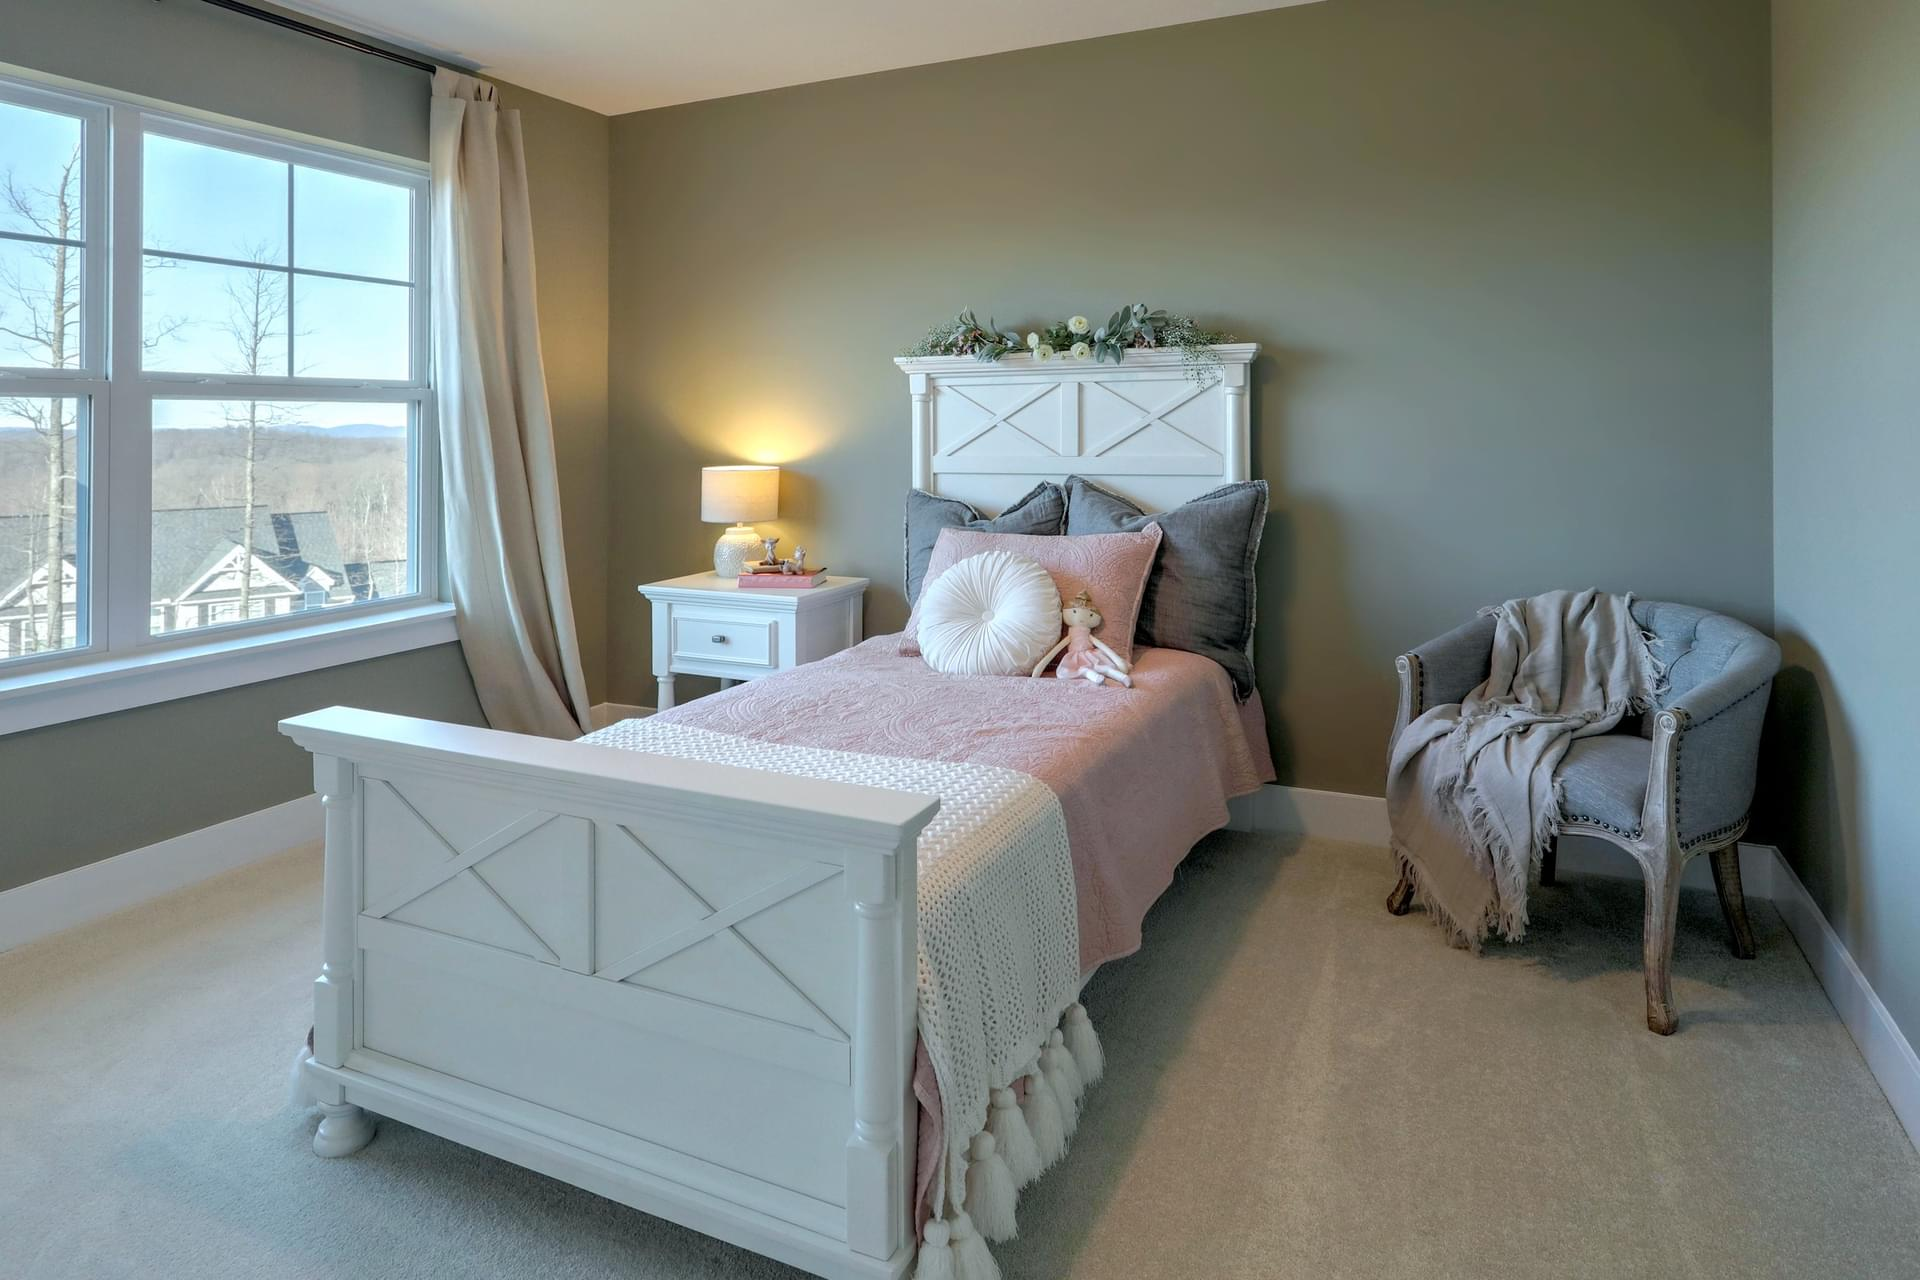 Beacon Pointe New Home in Pottstown, PA